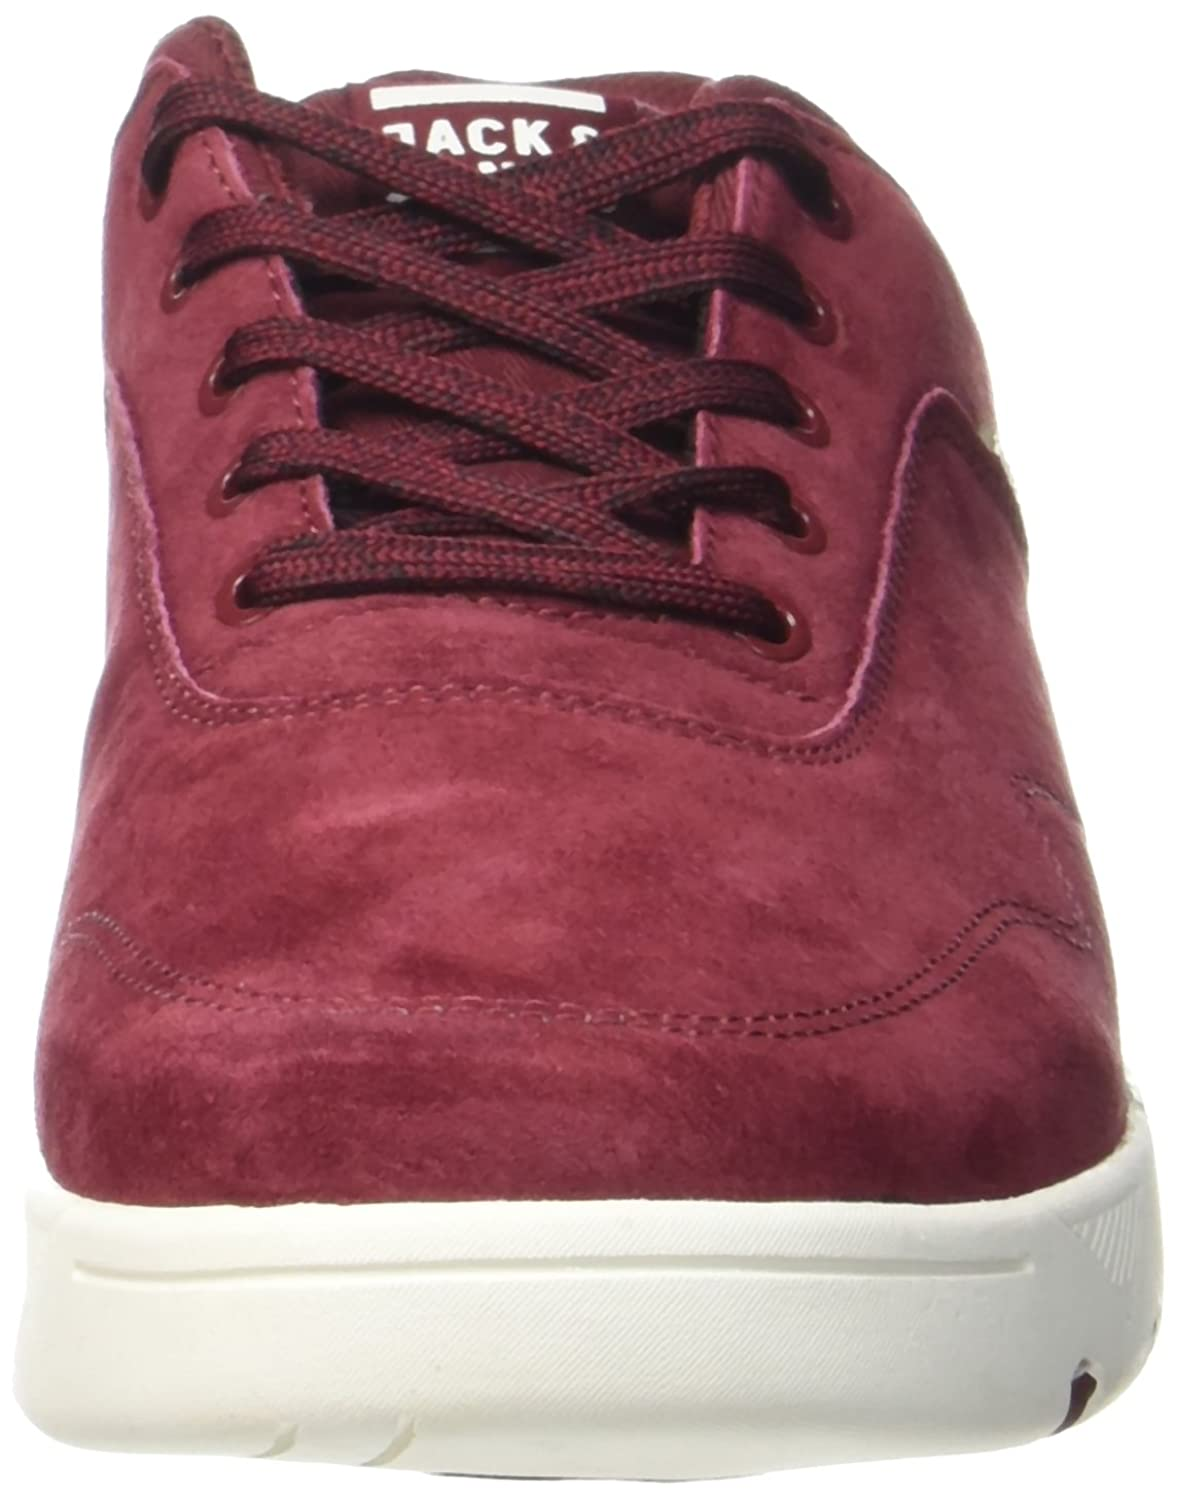 Jack & Jones Jfwhoughton Nubuck Burgundy, Sneakers Basses Homme, Violet (Burgundy), 42 EU